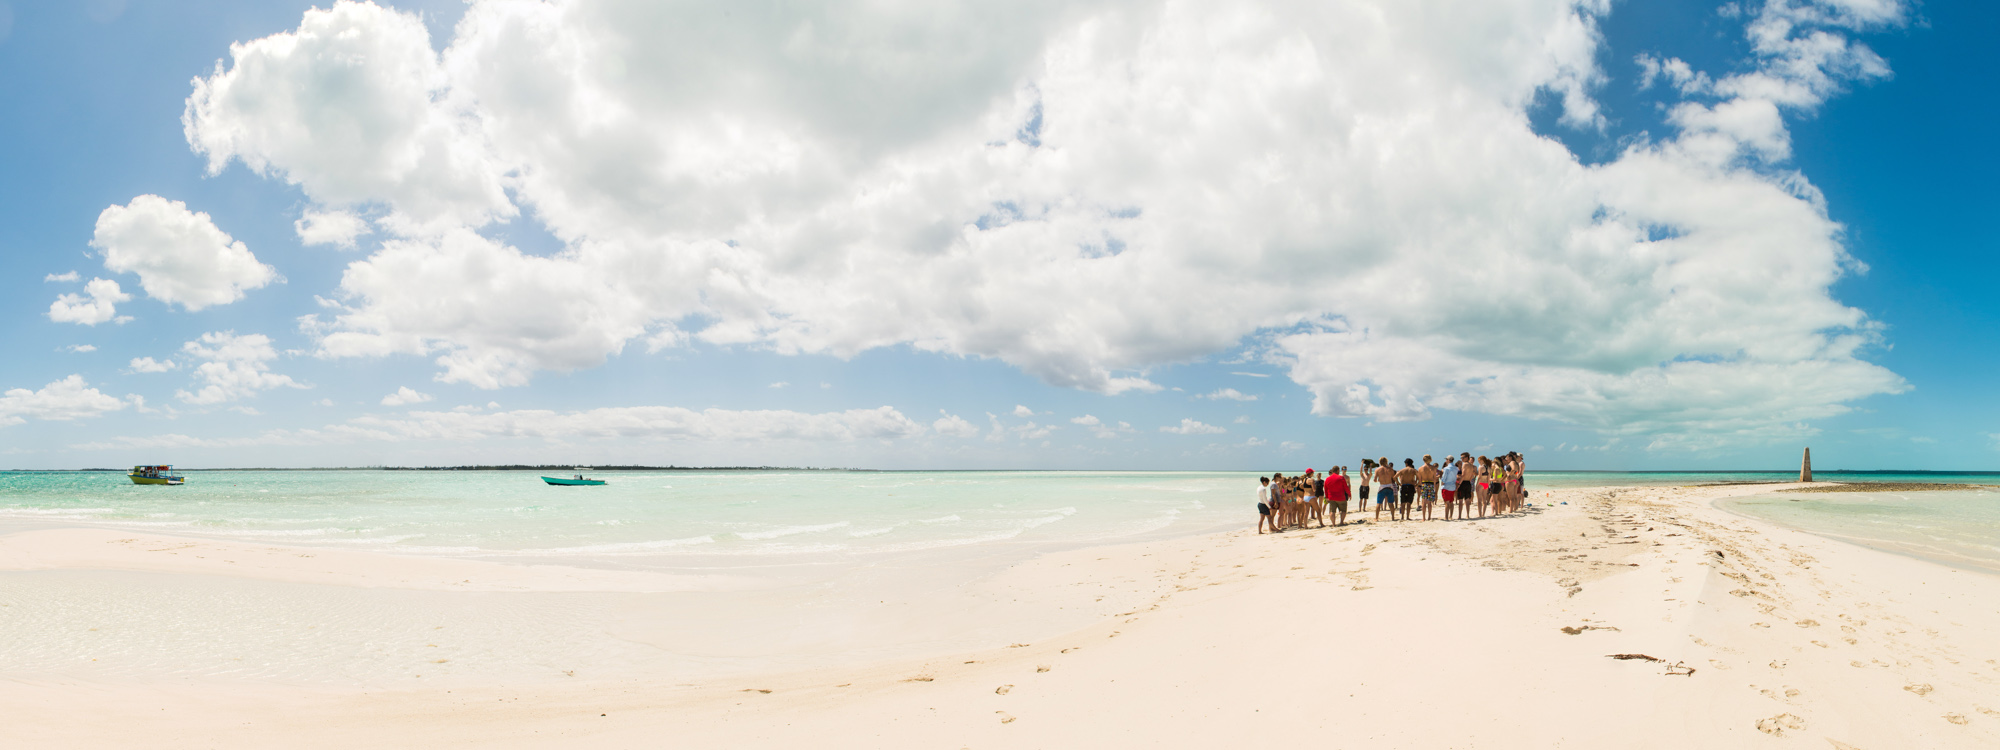 Island School Sandbar Class 2 - Eleuthera, The Bahamas